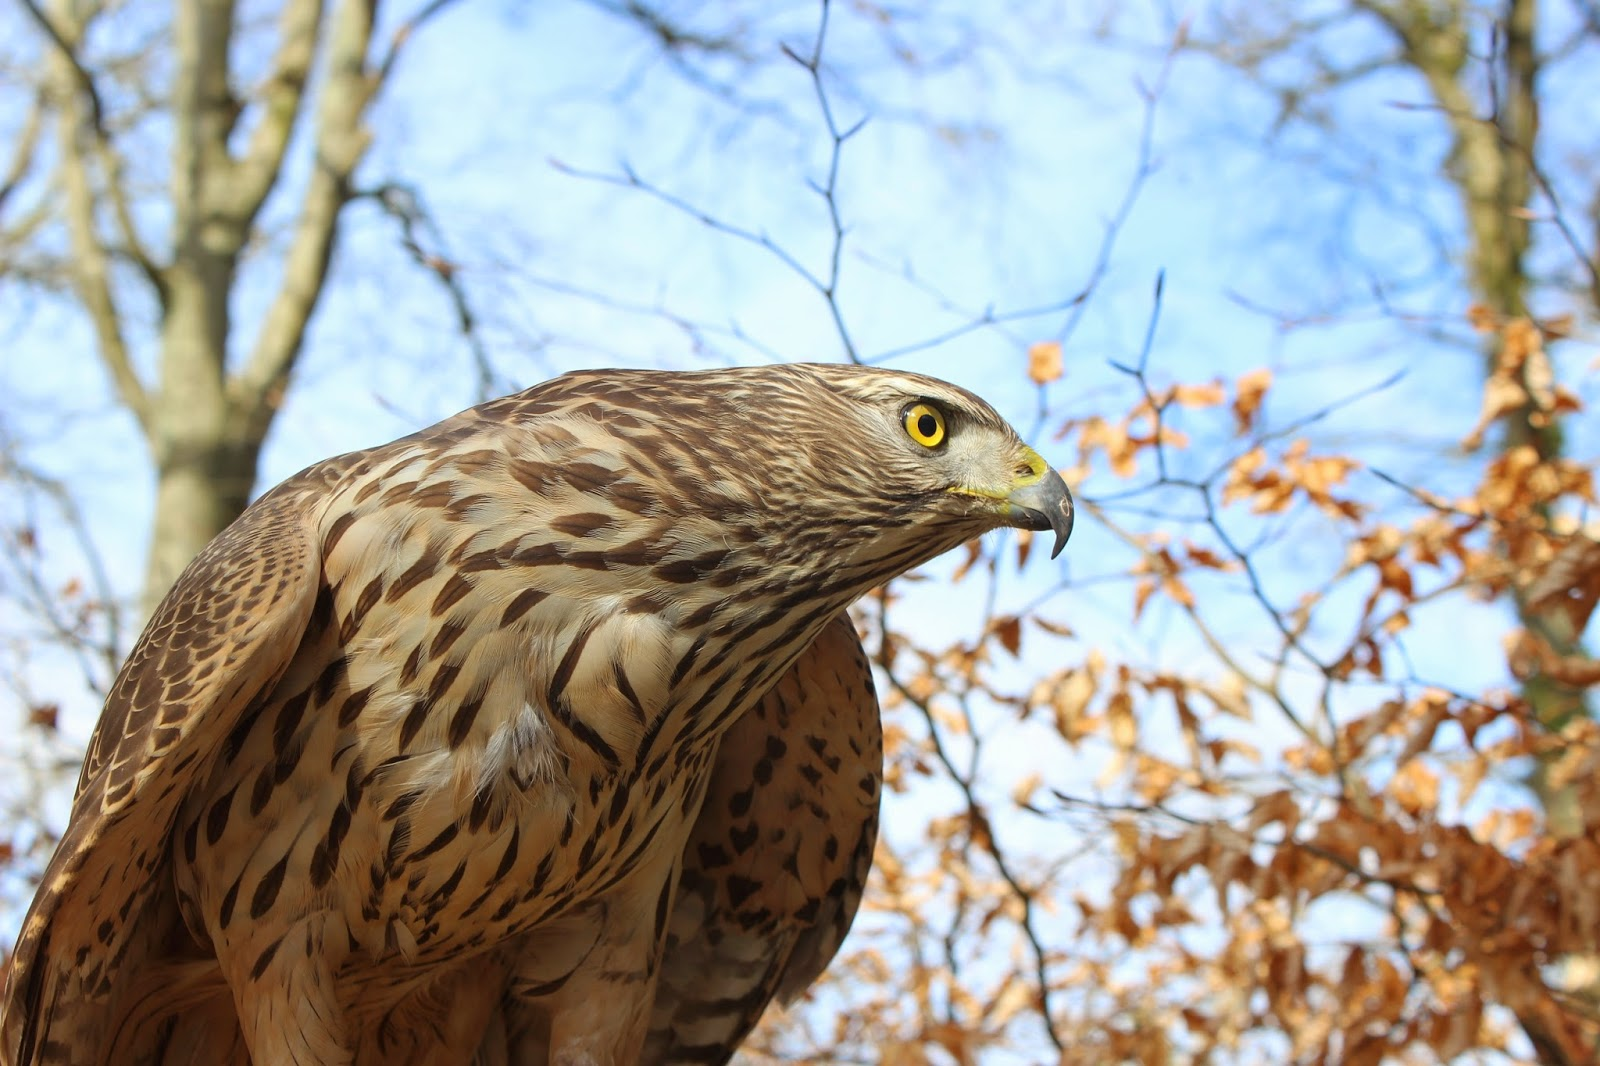 Live webcam of Goshawk nesting in the New Forest